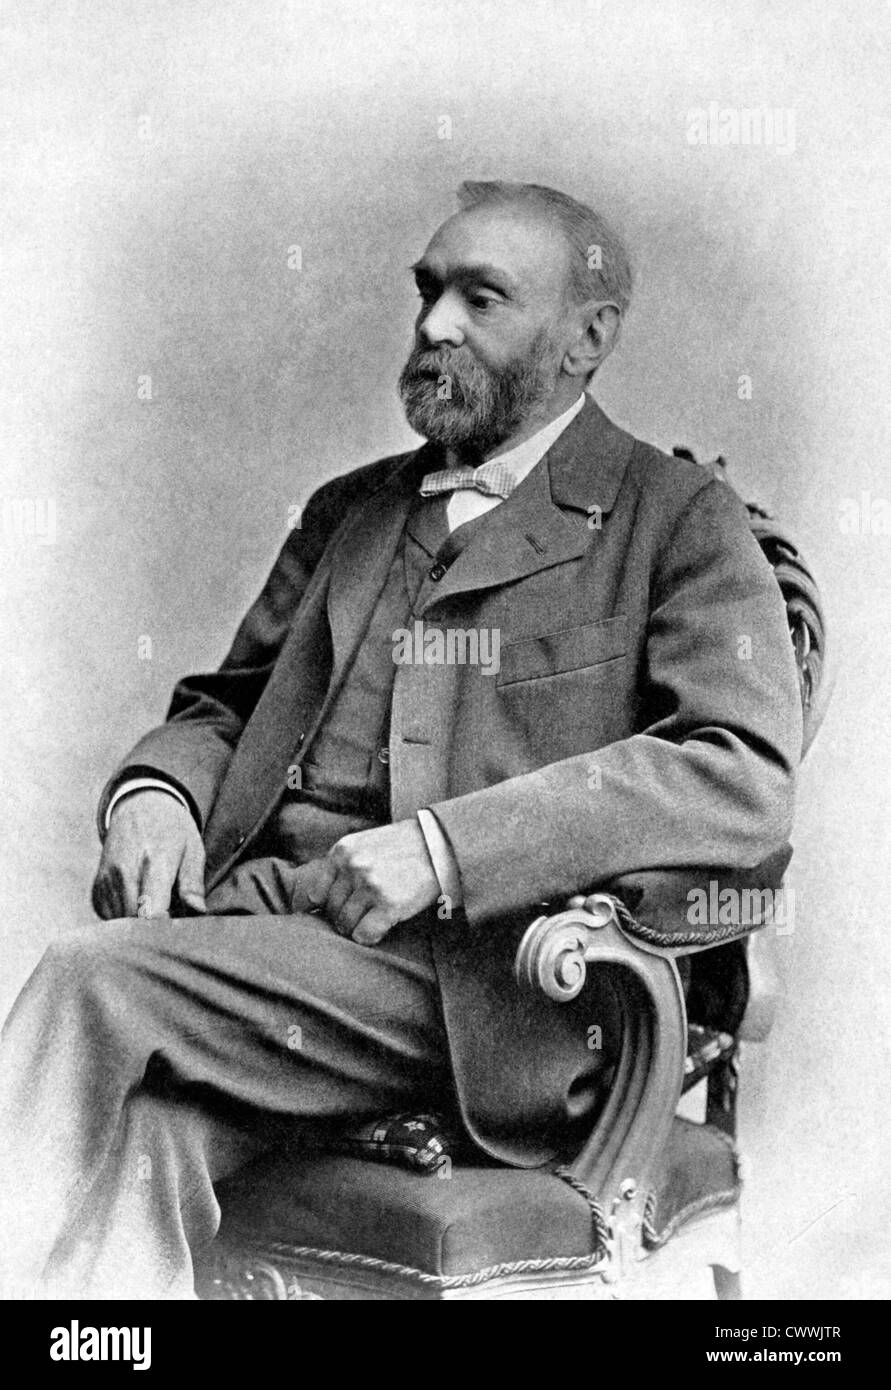 Alfred Nobel (1833-1896) on antique print from 1899.  Swedish chemist, engineer, innovator and armaments manufacturer. - Stock Image